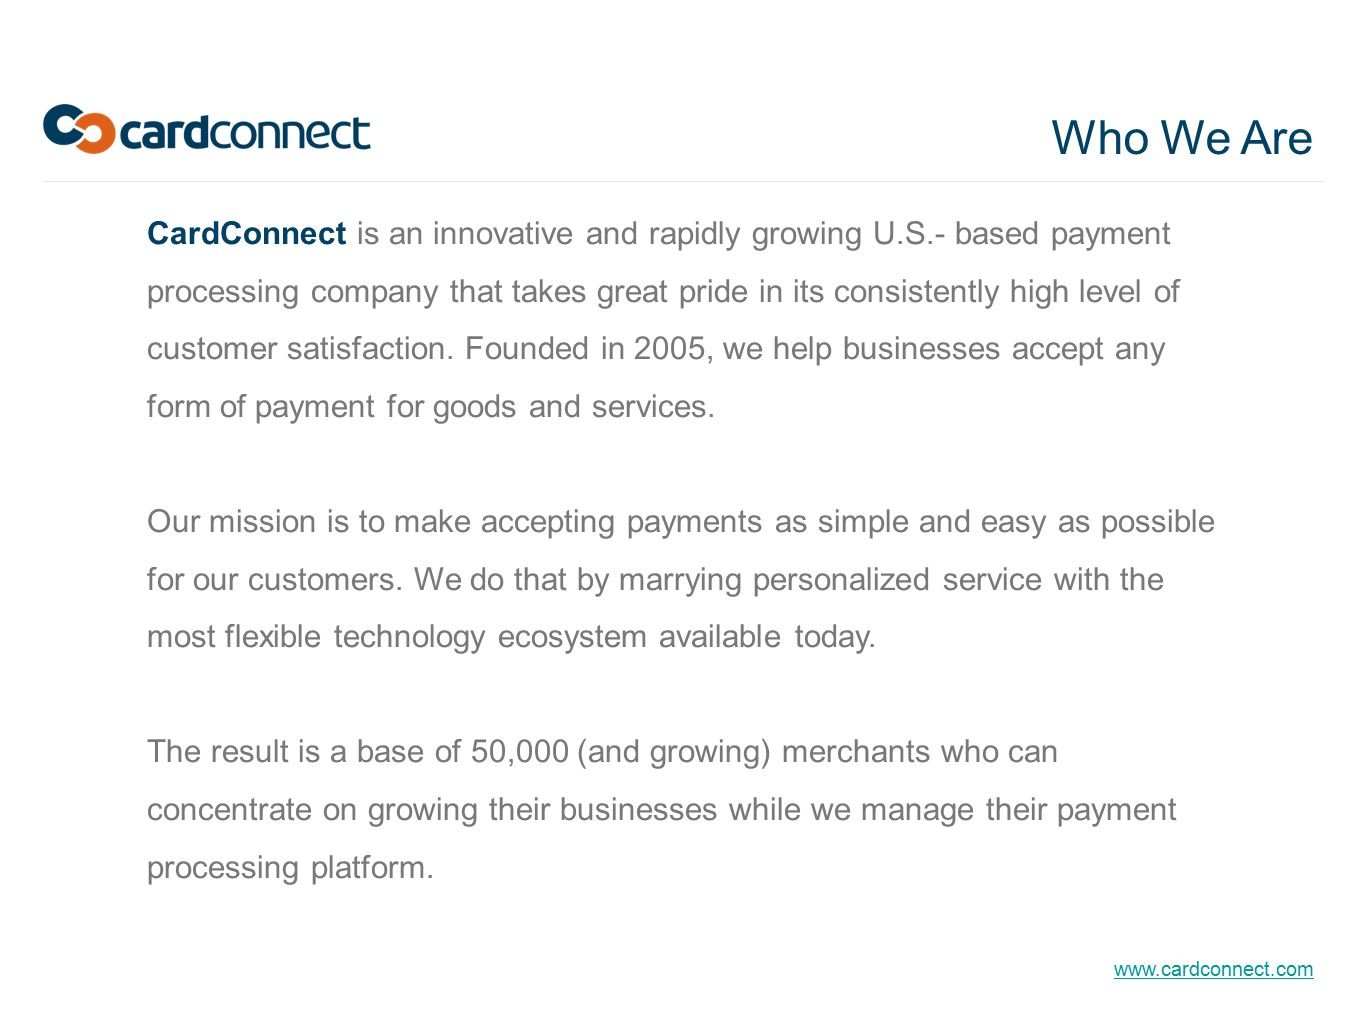 www.cardconnect.com CardConnect is an innovative and rapidly growing U.S.- based payment processing company that takes great pride in its consistently high level of customer satisfaction.